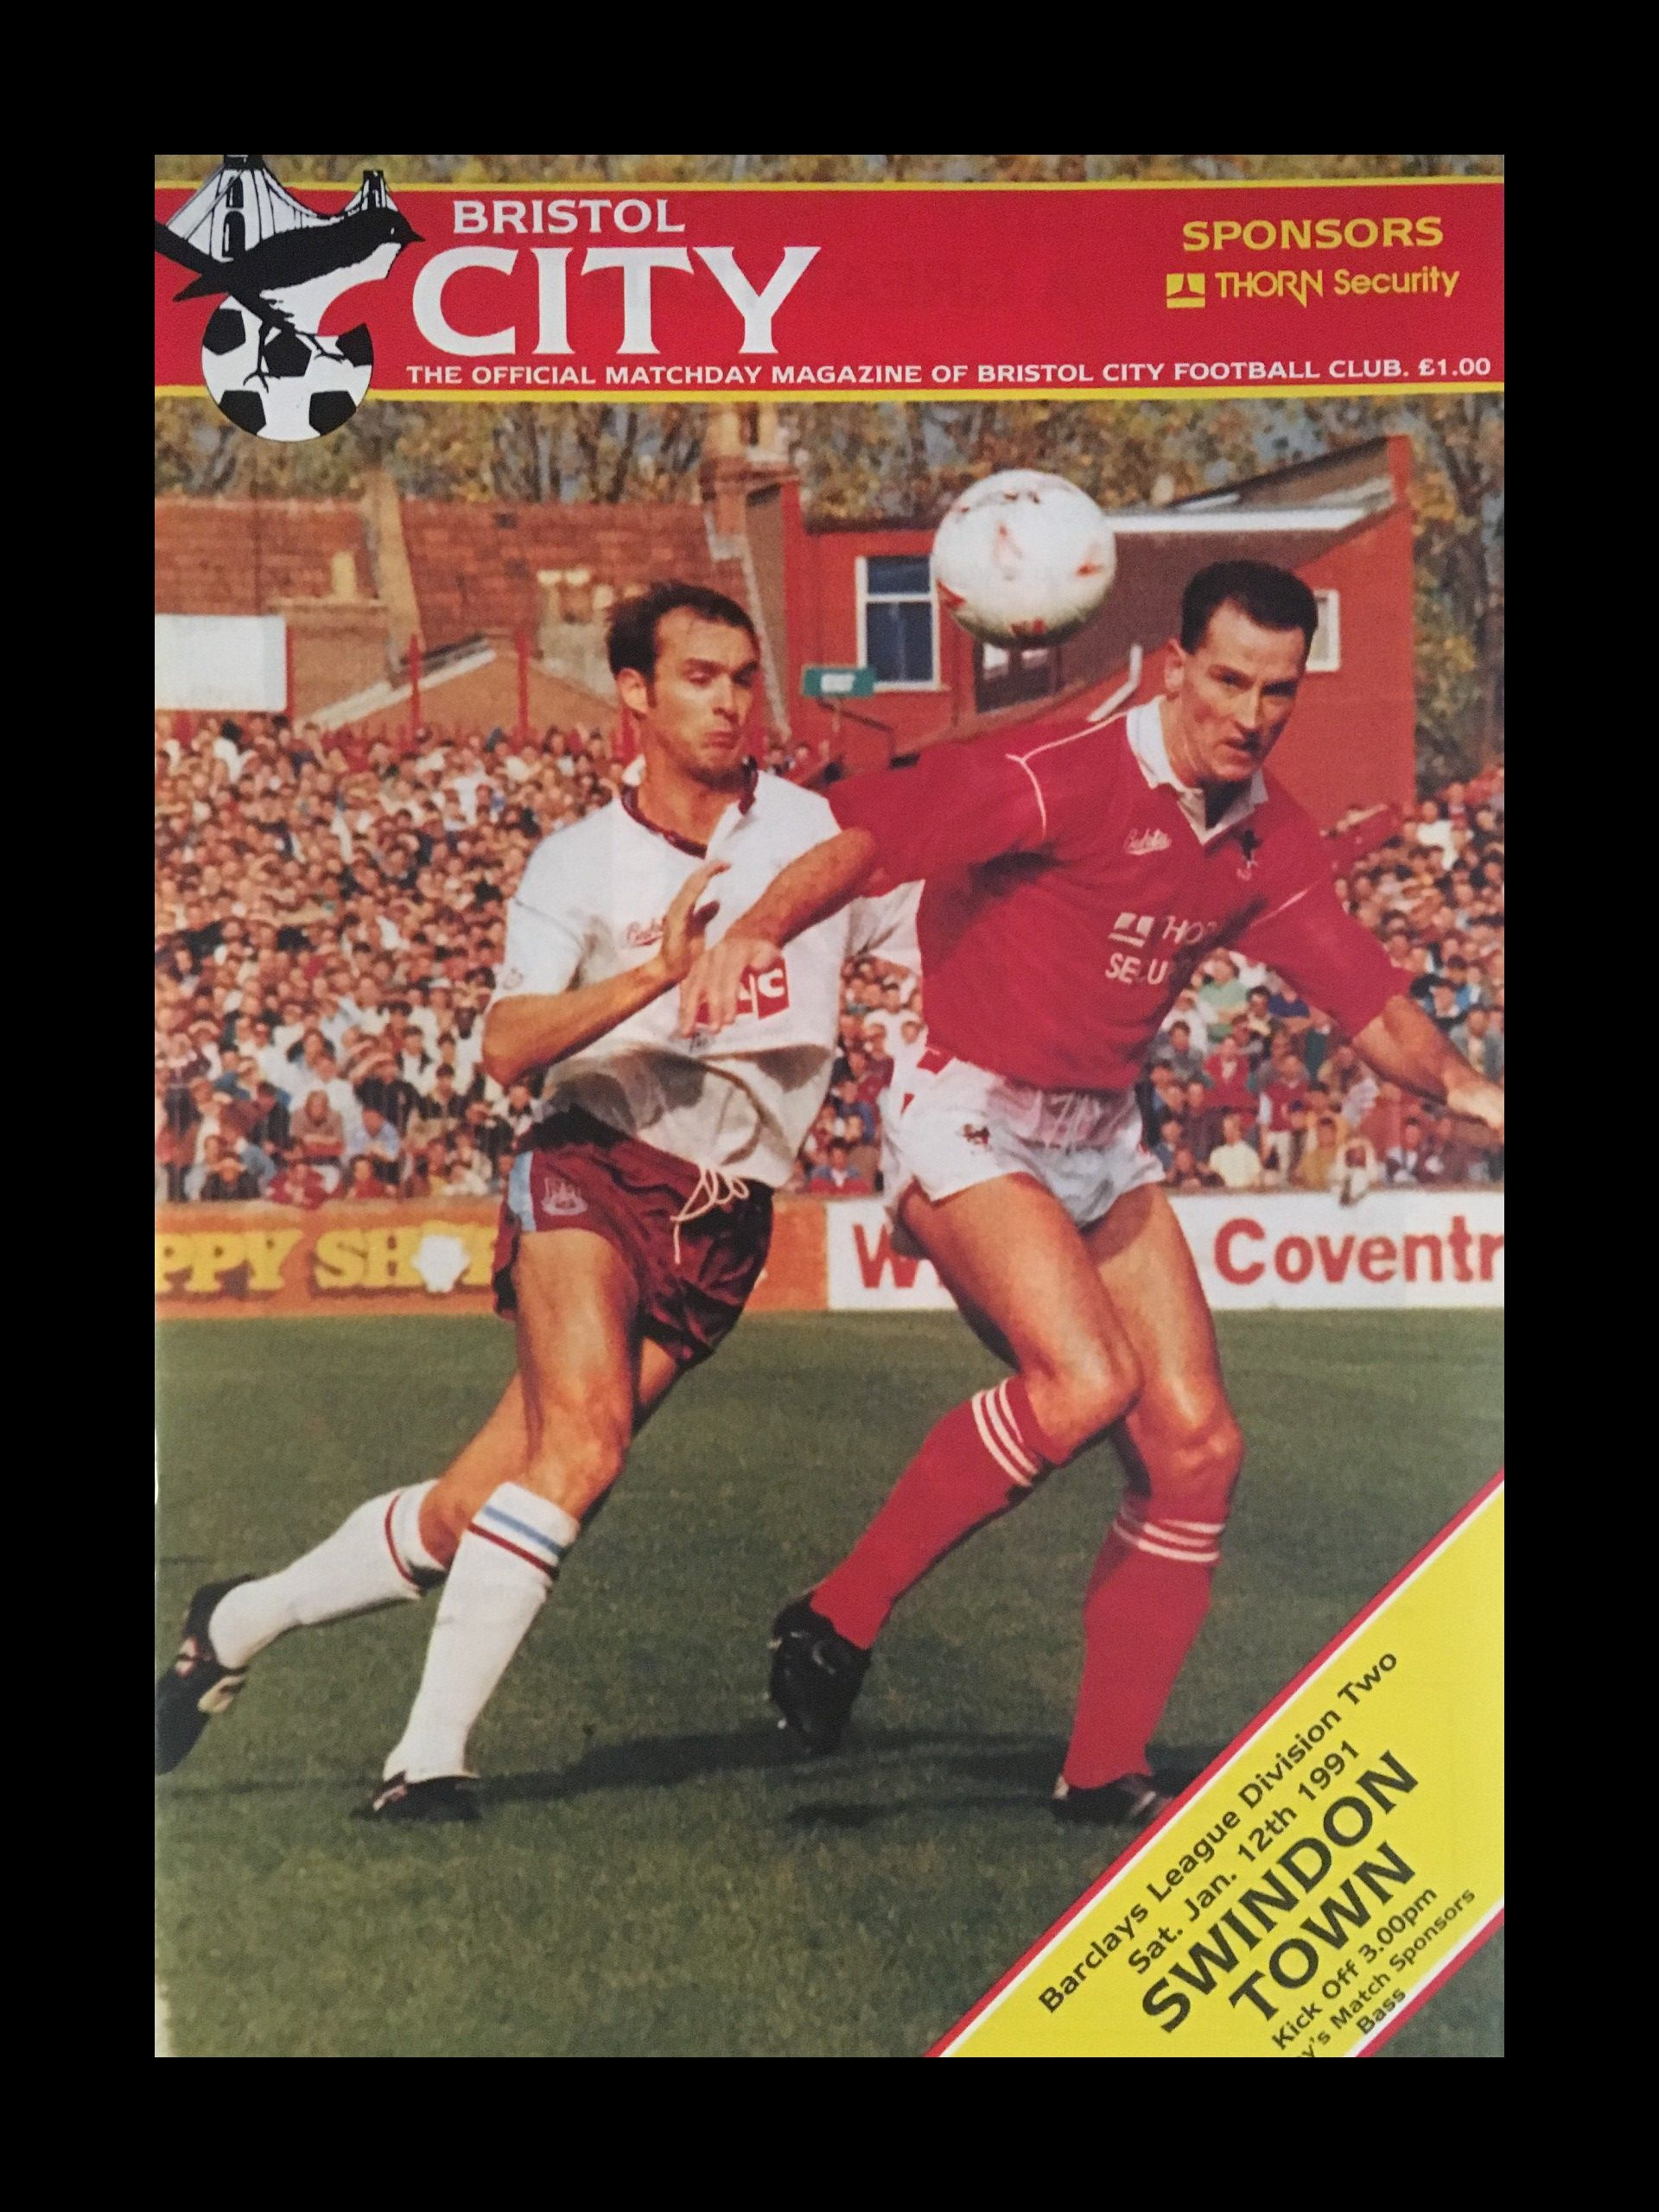 Bristol City v Swindon Town 12-01-1991 Programme